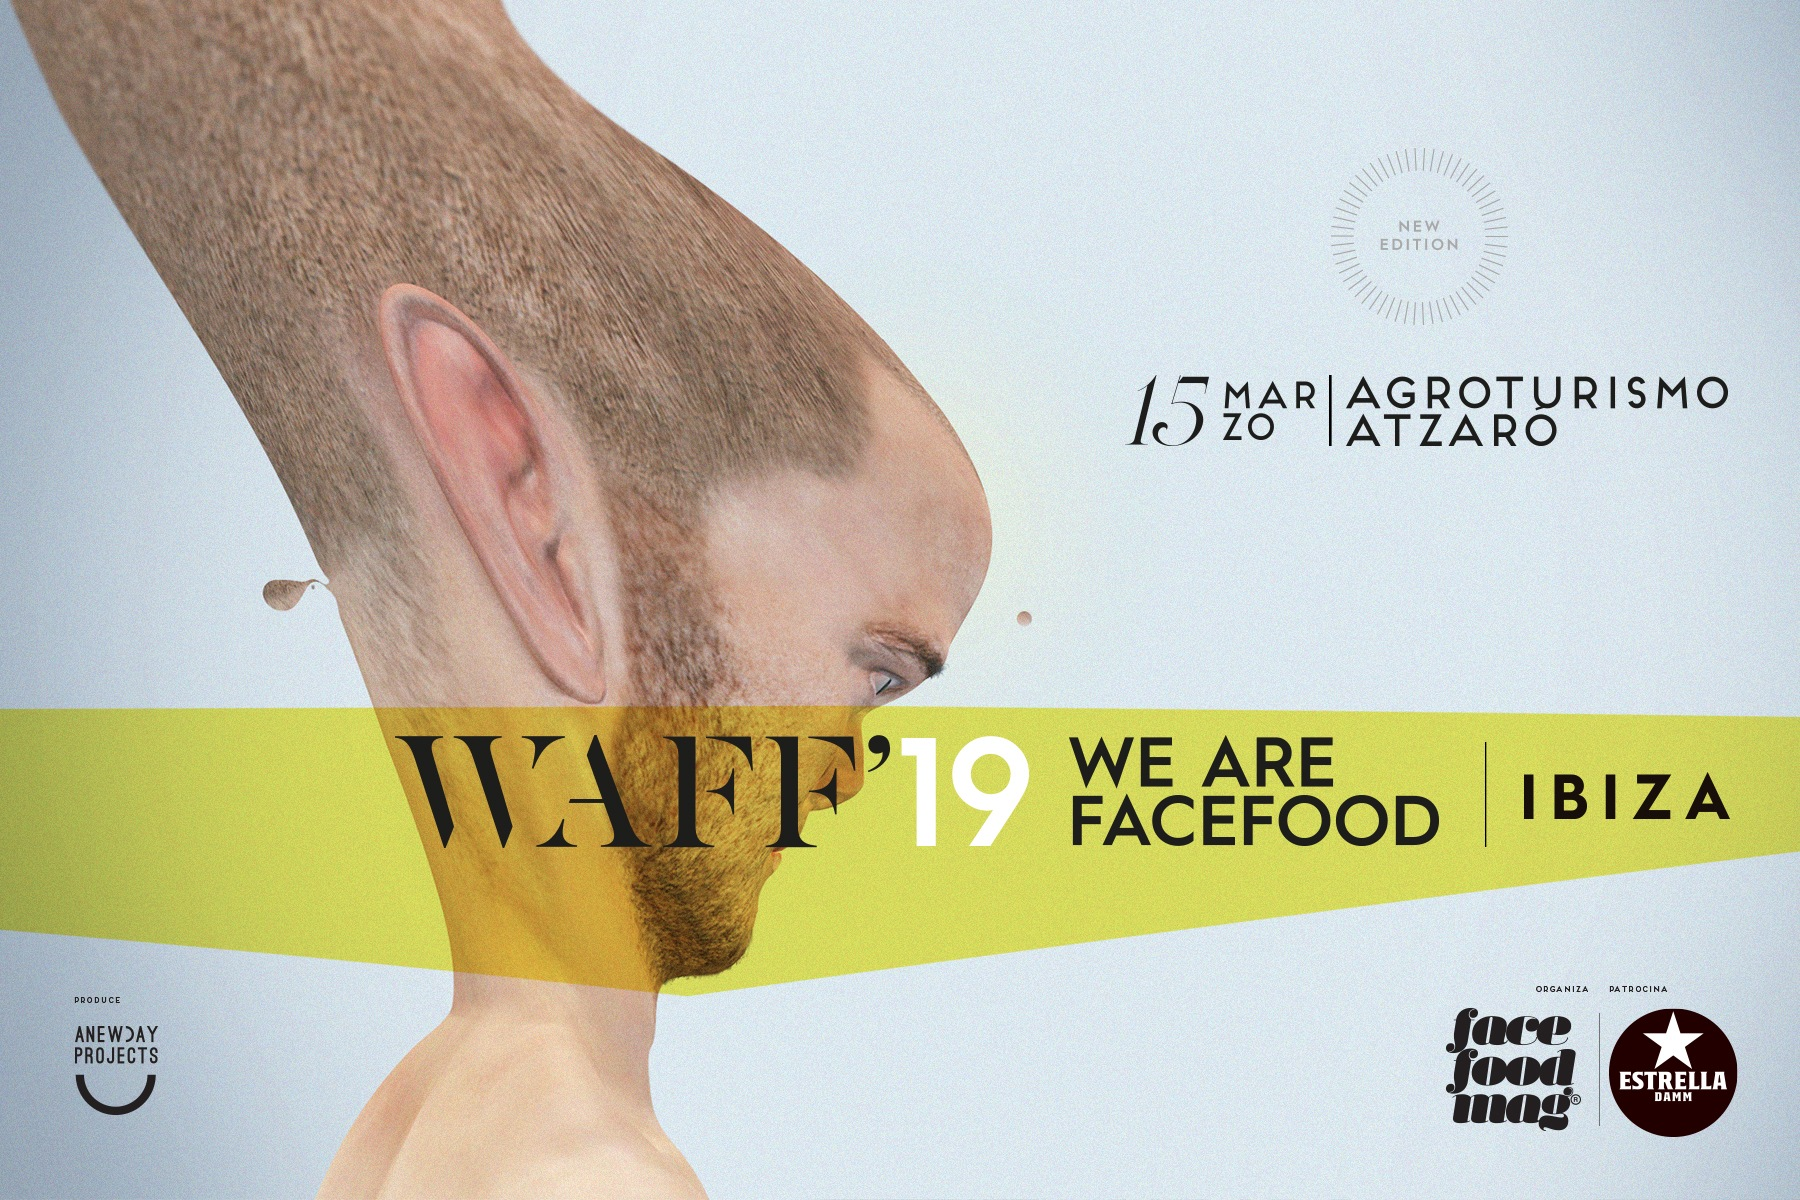 we-are-facefood-ibiza-2019